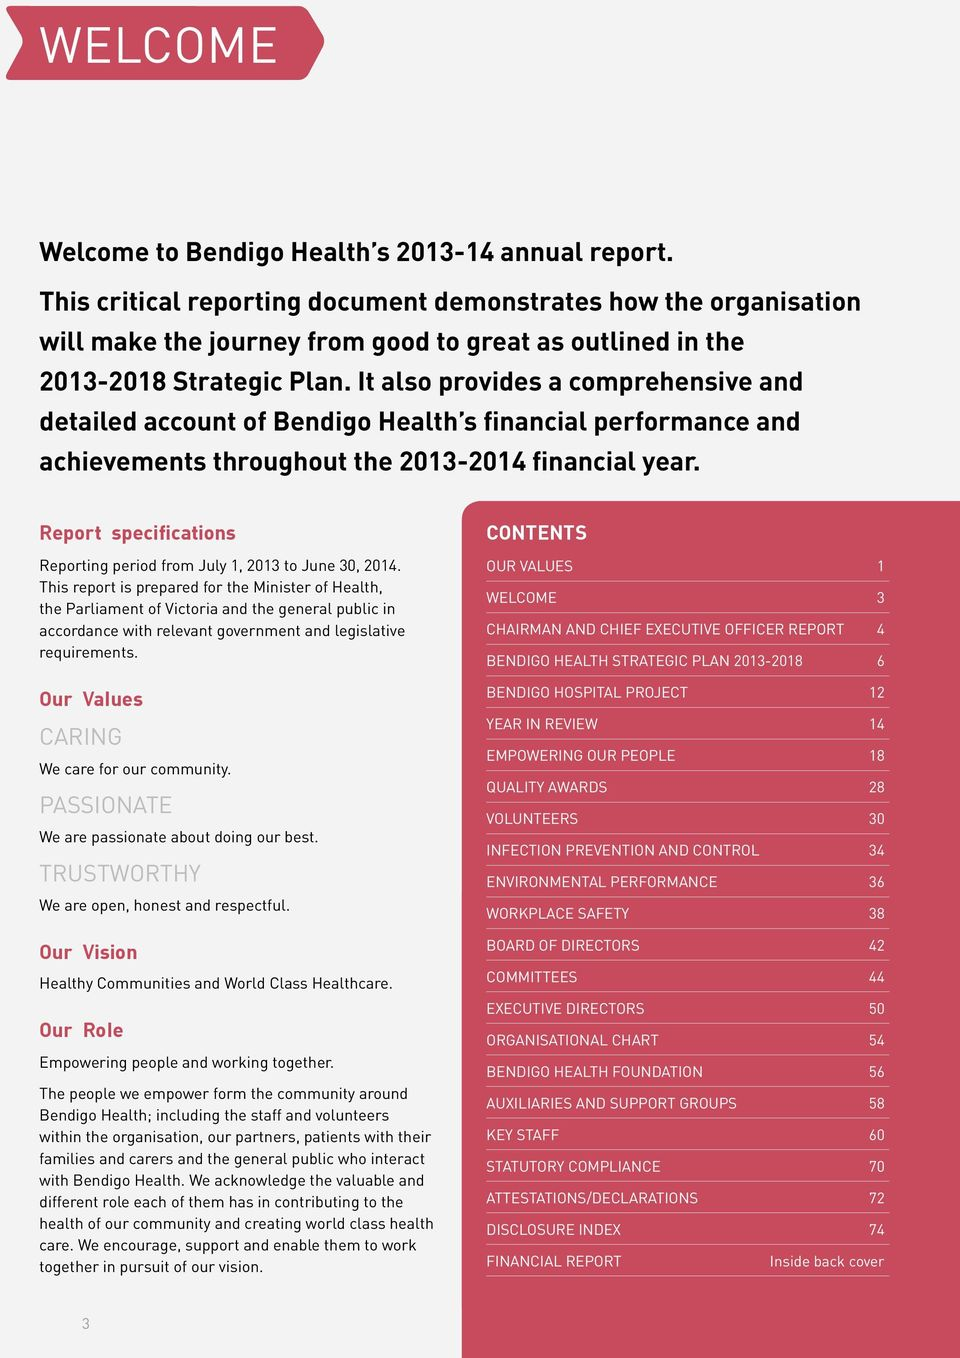 It also provides a comprehensive and detailed account of Bendigo Health s financial performance and achievements throughout the 2013-2014 financial year.